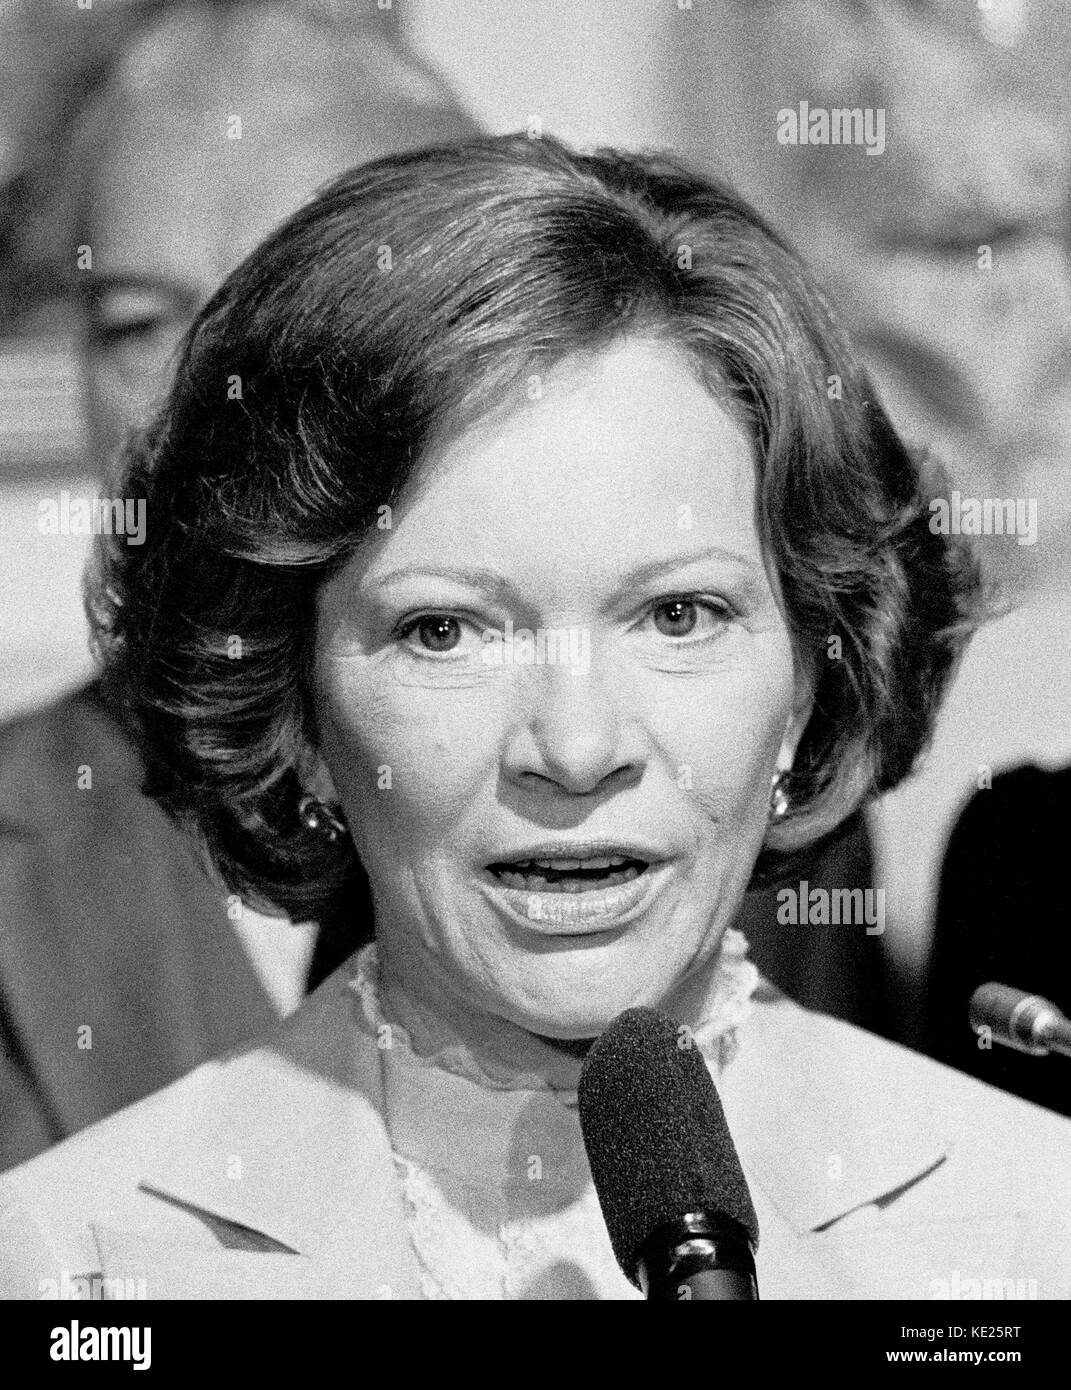 Rosalynn Carter, wife of President Jimmy Carter, visiting San Francisco, California - Stock Image